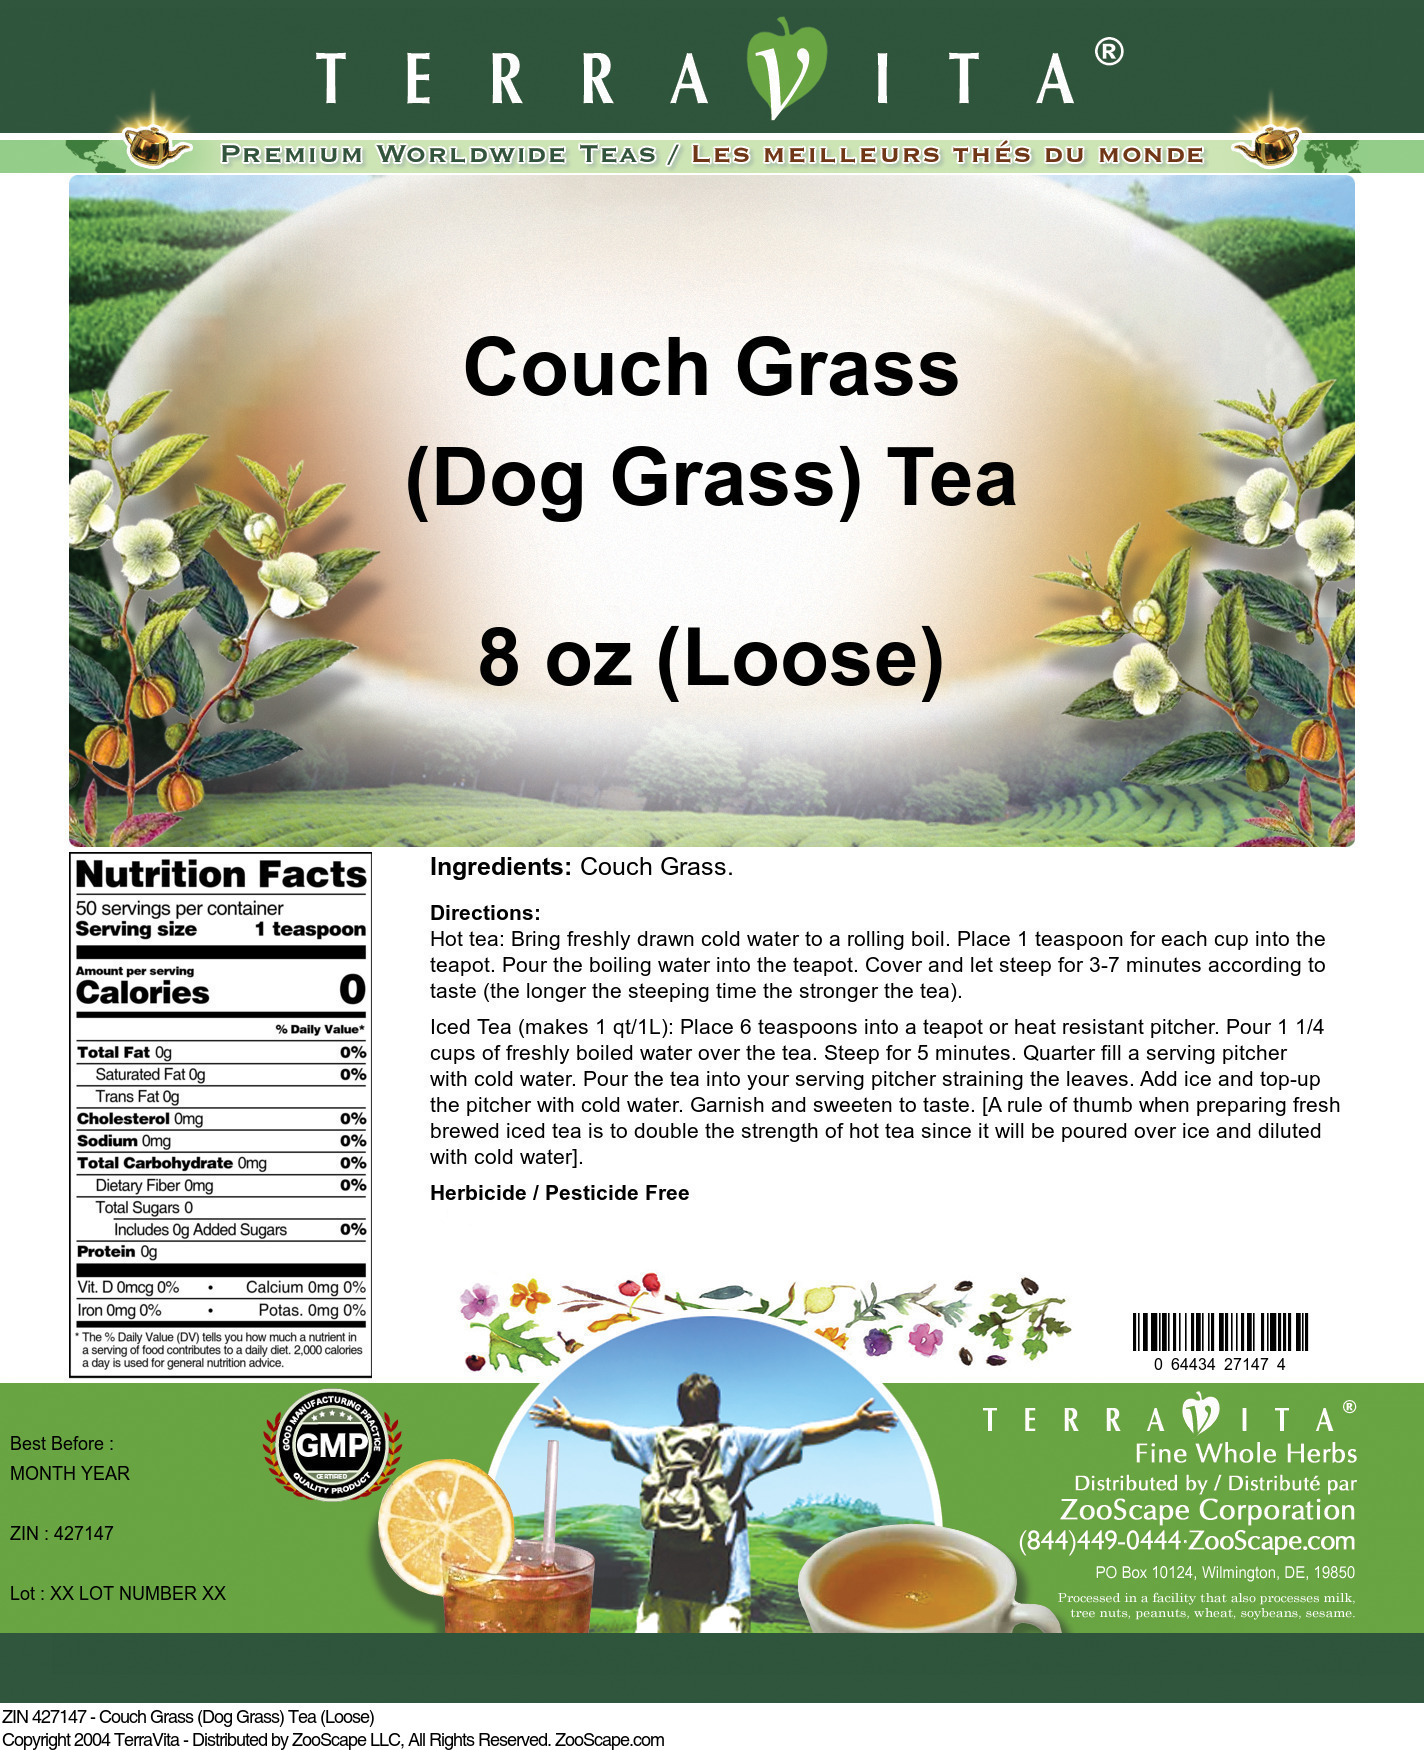 Couch Grass